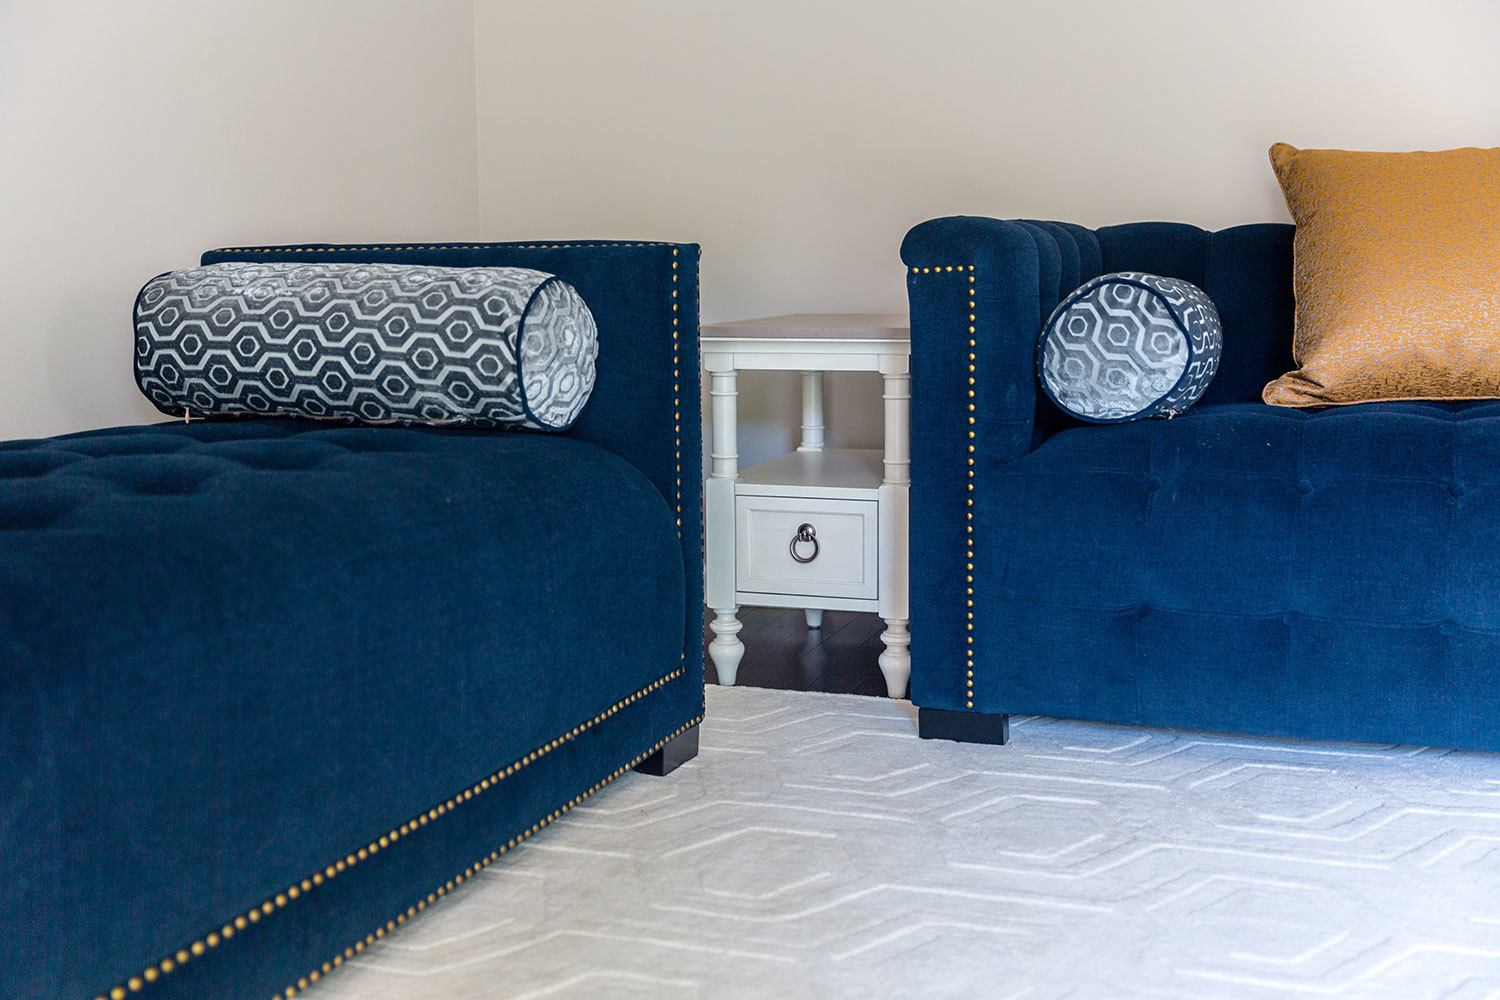 raymour and flannigan furniture review